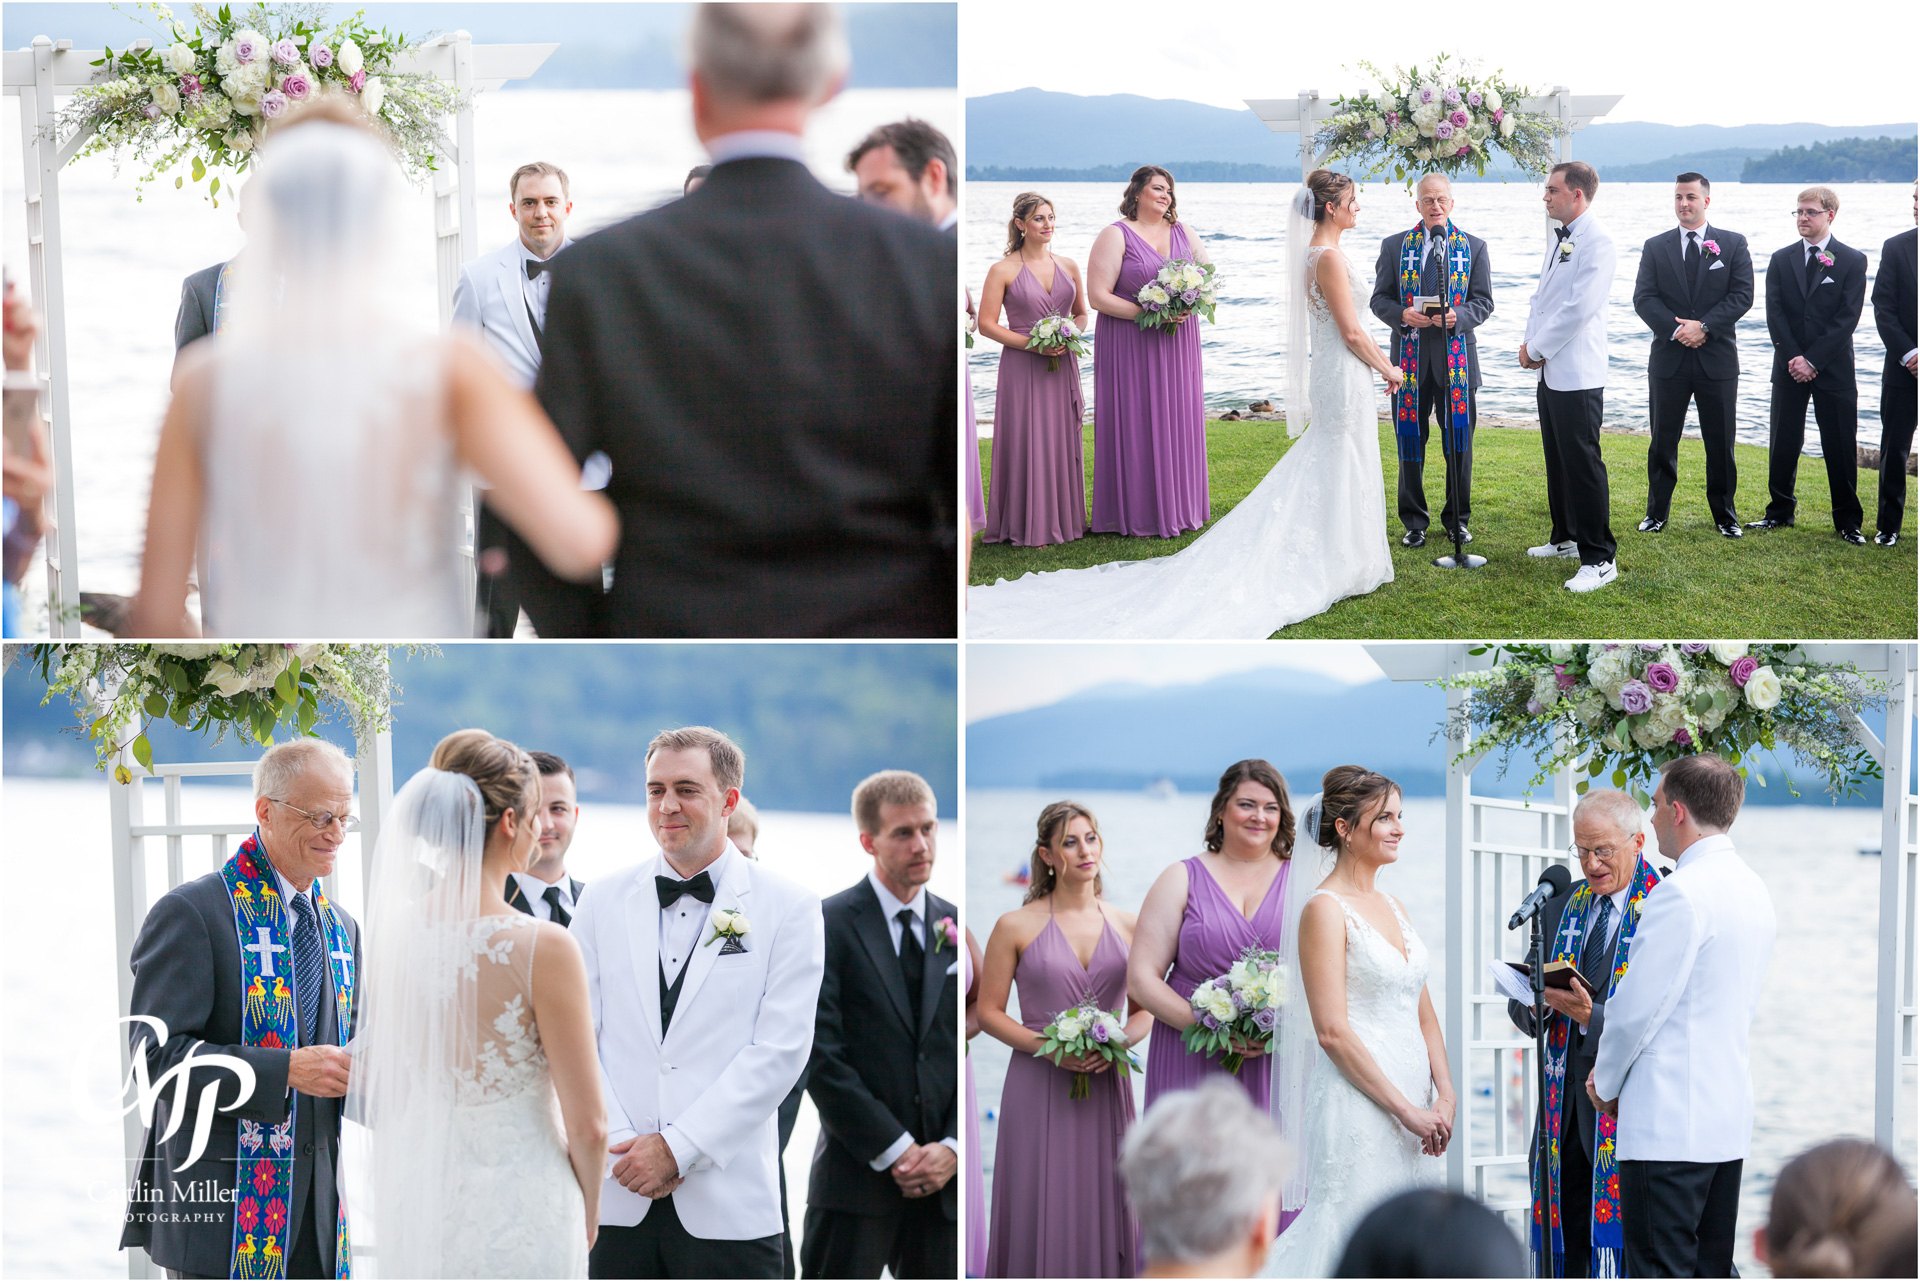 sale-11.jpg from Kendall and Chris's Lake George wedding at the Inn at Erlowest by Saratoga Wedding Photographer Caitlin Miller Photography. Lake George Wedding Photographer. Adirondack wedding photographer. Albany wedding photographer. Lake Placid Wedding Photographer. Saratoga Wedding Photographer